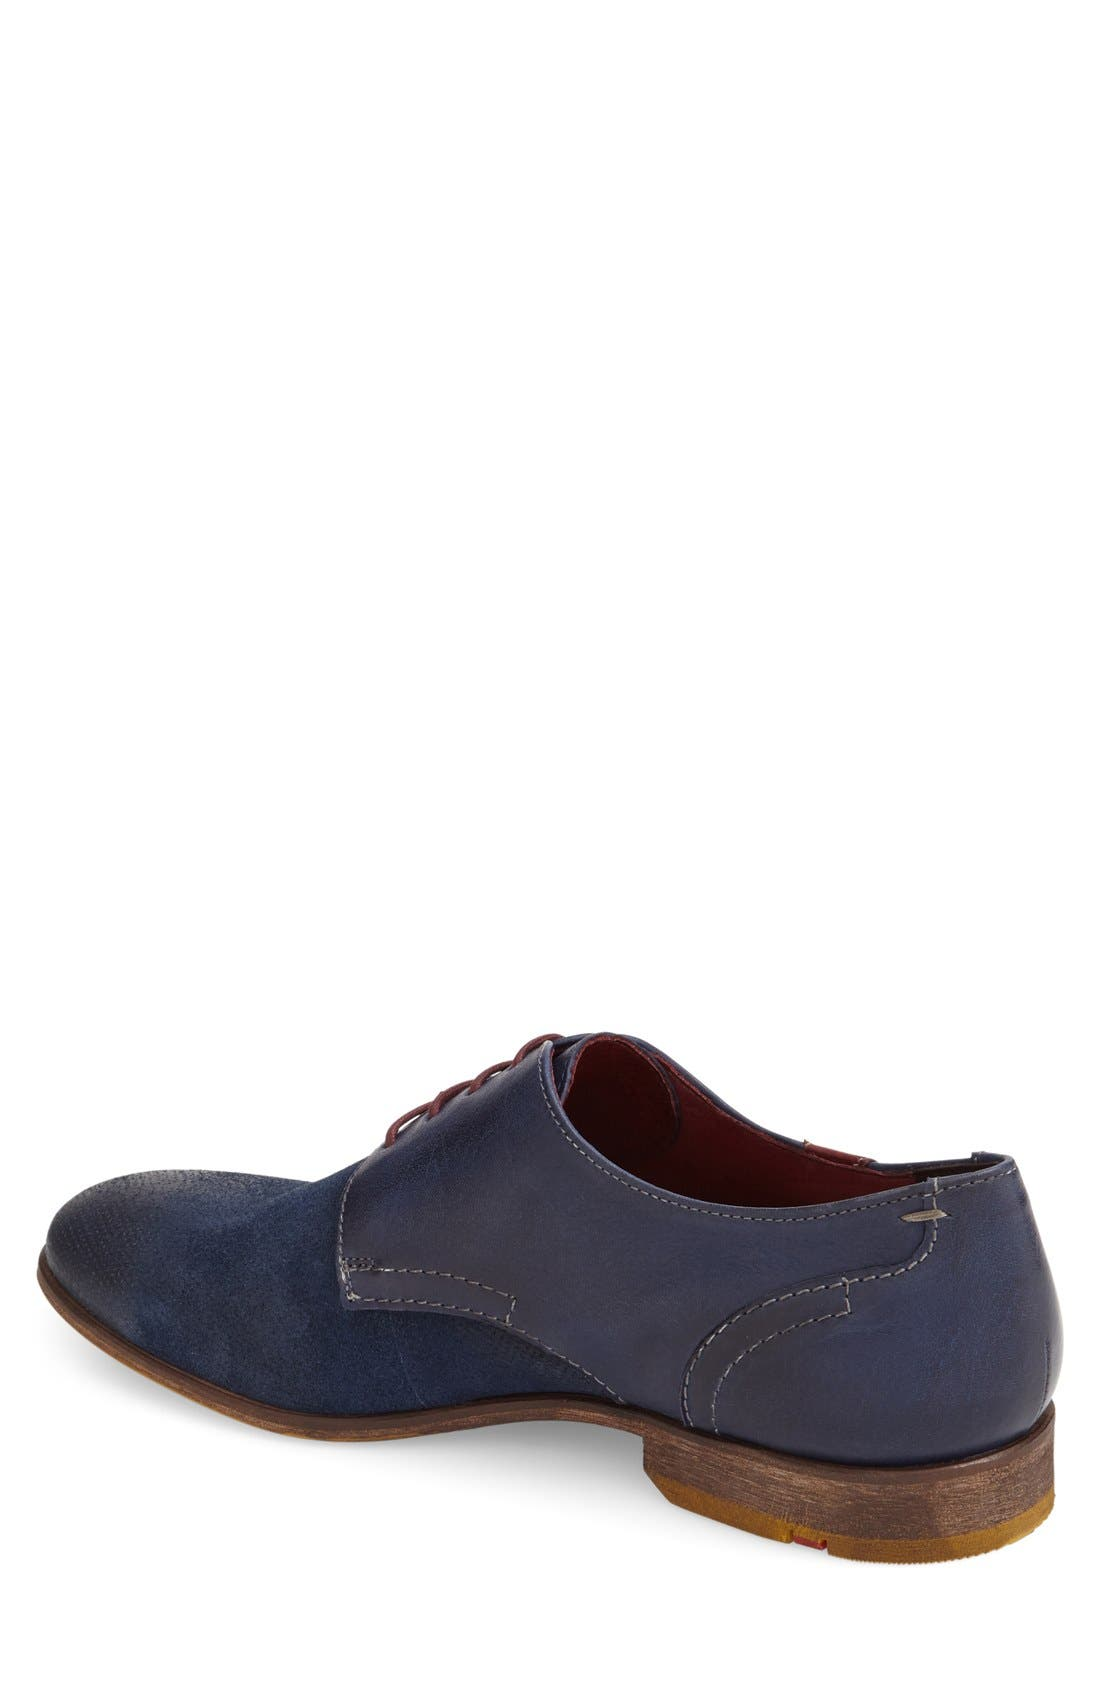 Alternate Image 2  - Lloyd 'Gardell' Plain Toe Derby (Men)